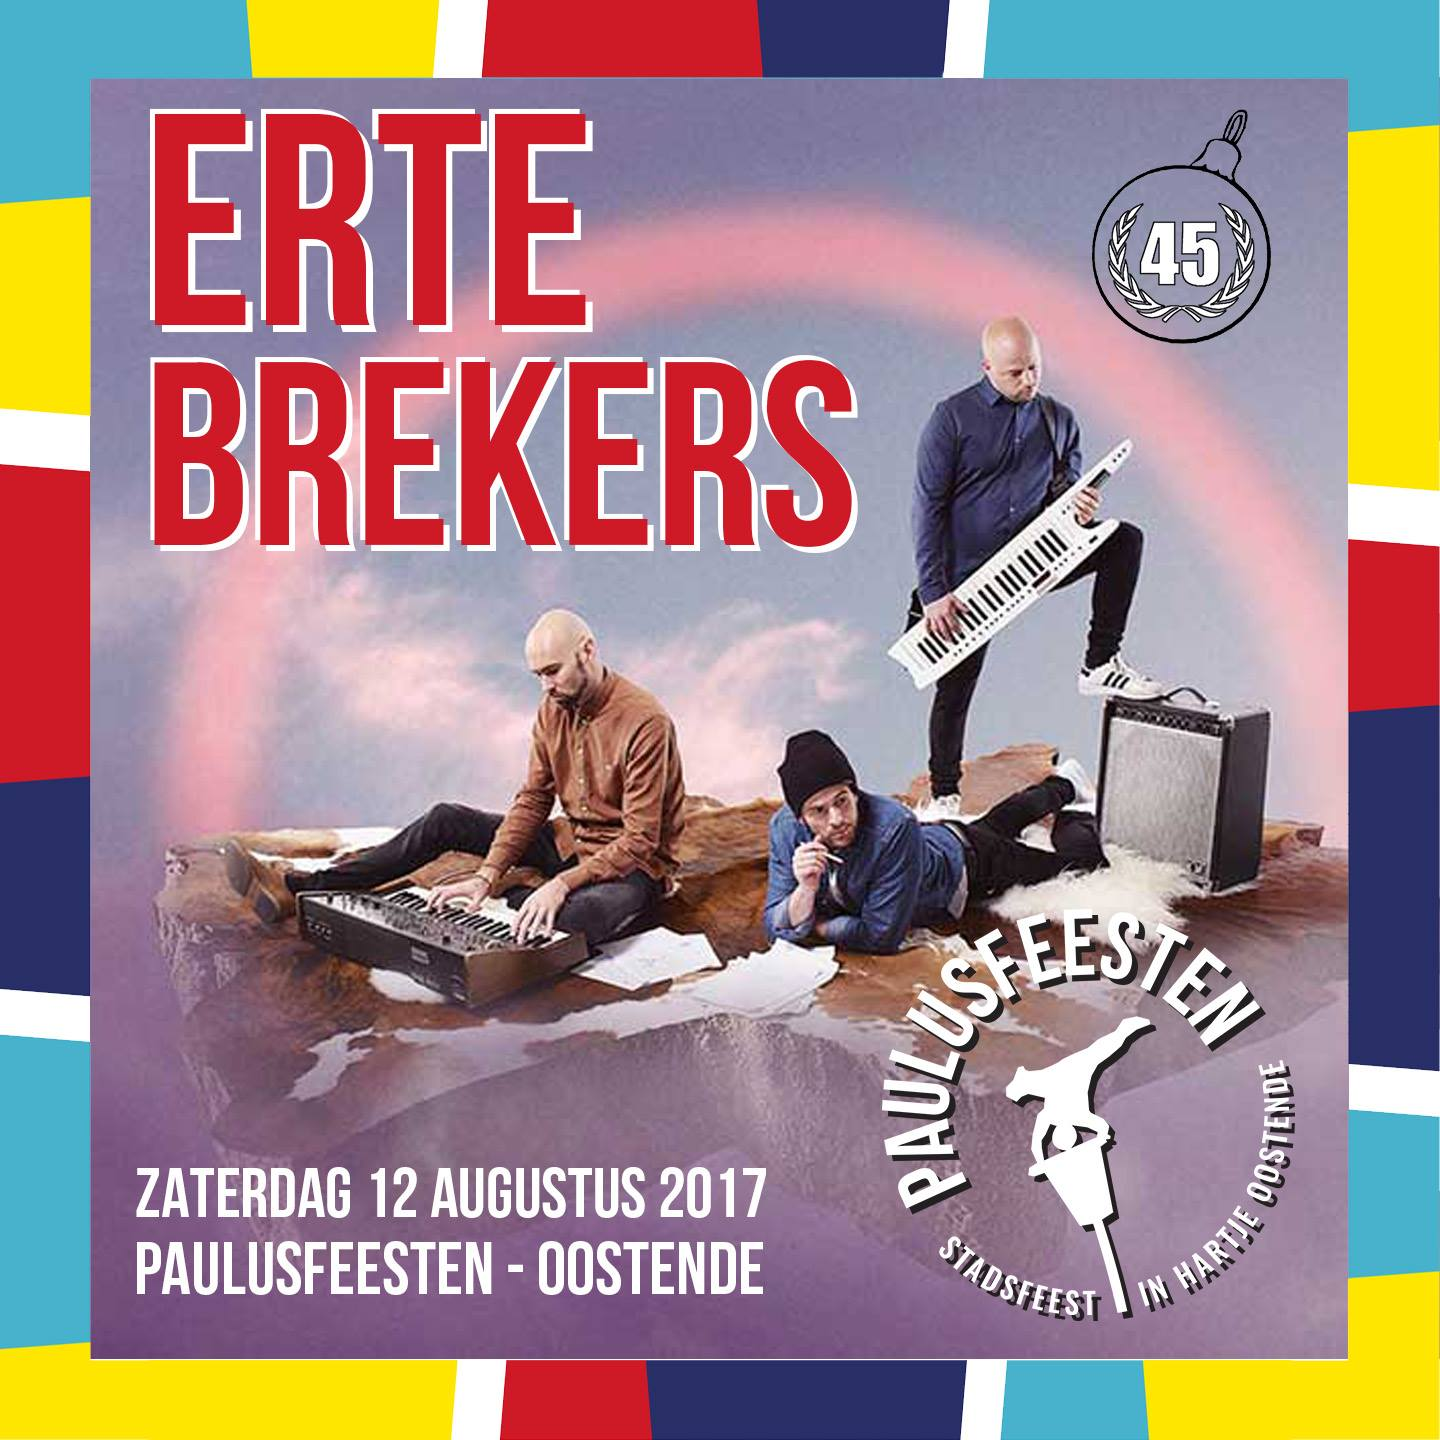 Ertebrekers